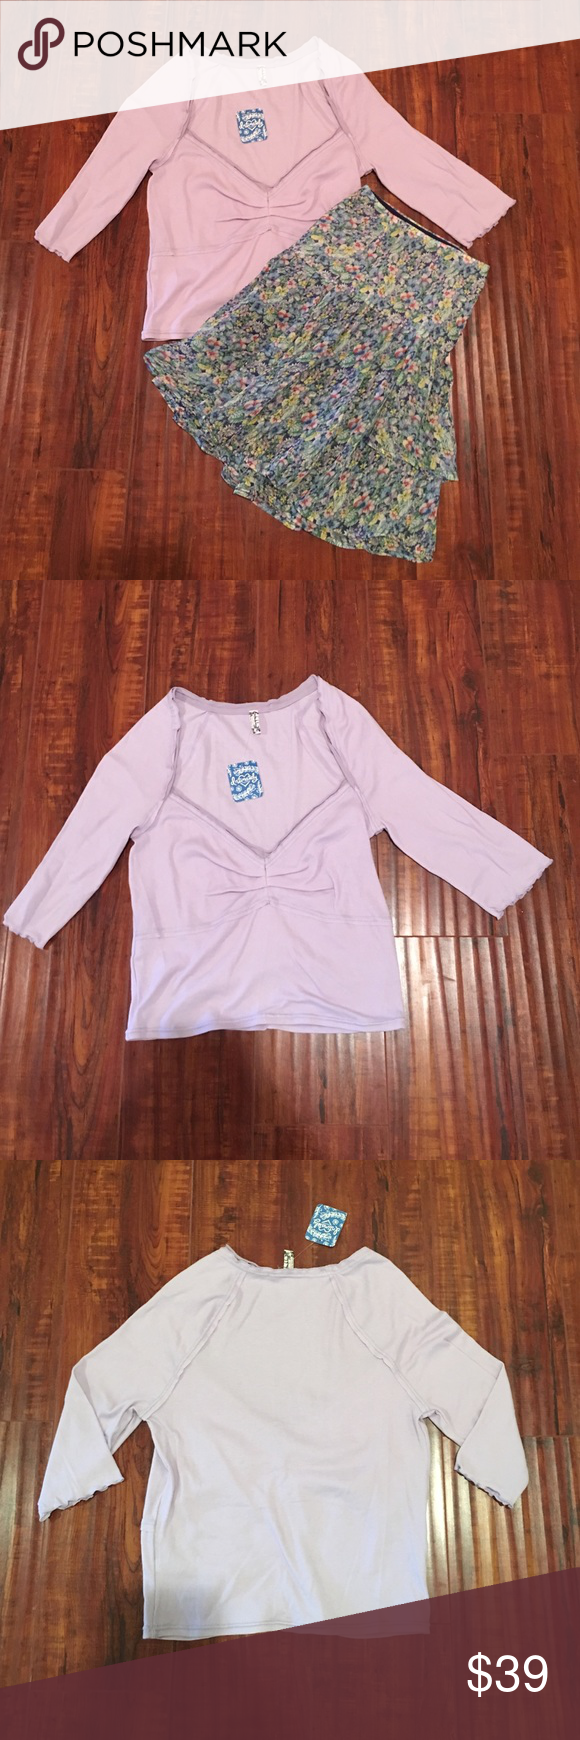 Free People Lavendar Cropped T-Shirt Free People lavendar cropped v-neck with ruffle and mid length sleeves. Brand new!! Free People Tops Tees - Short Sleeve